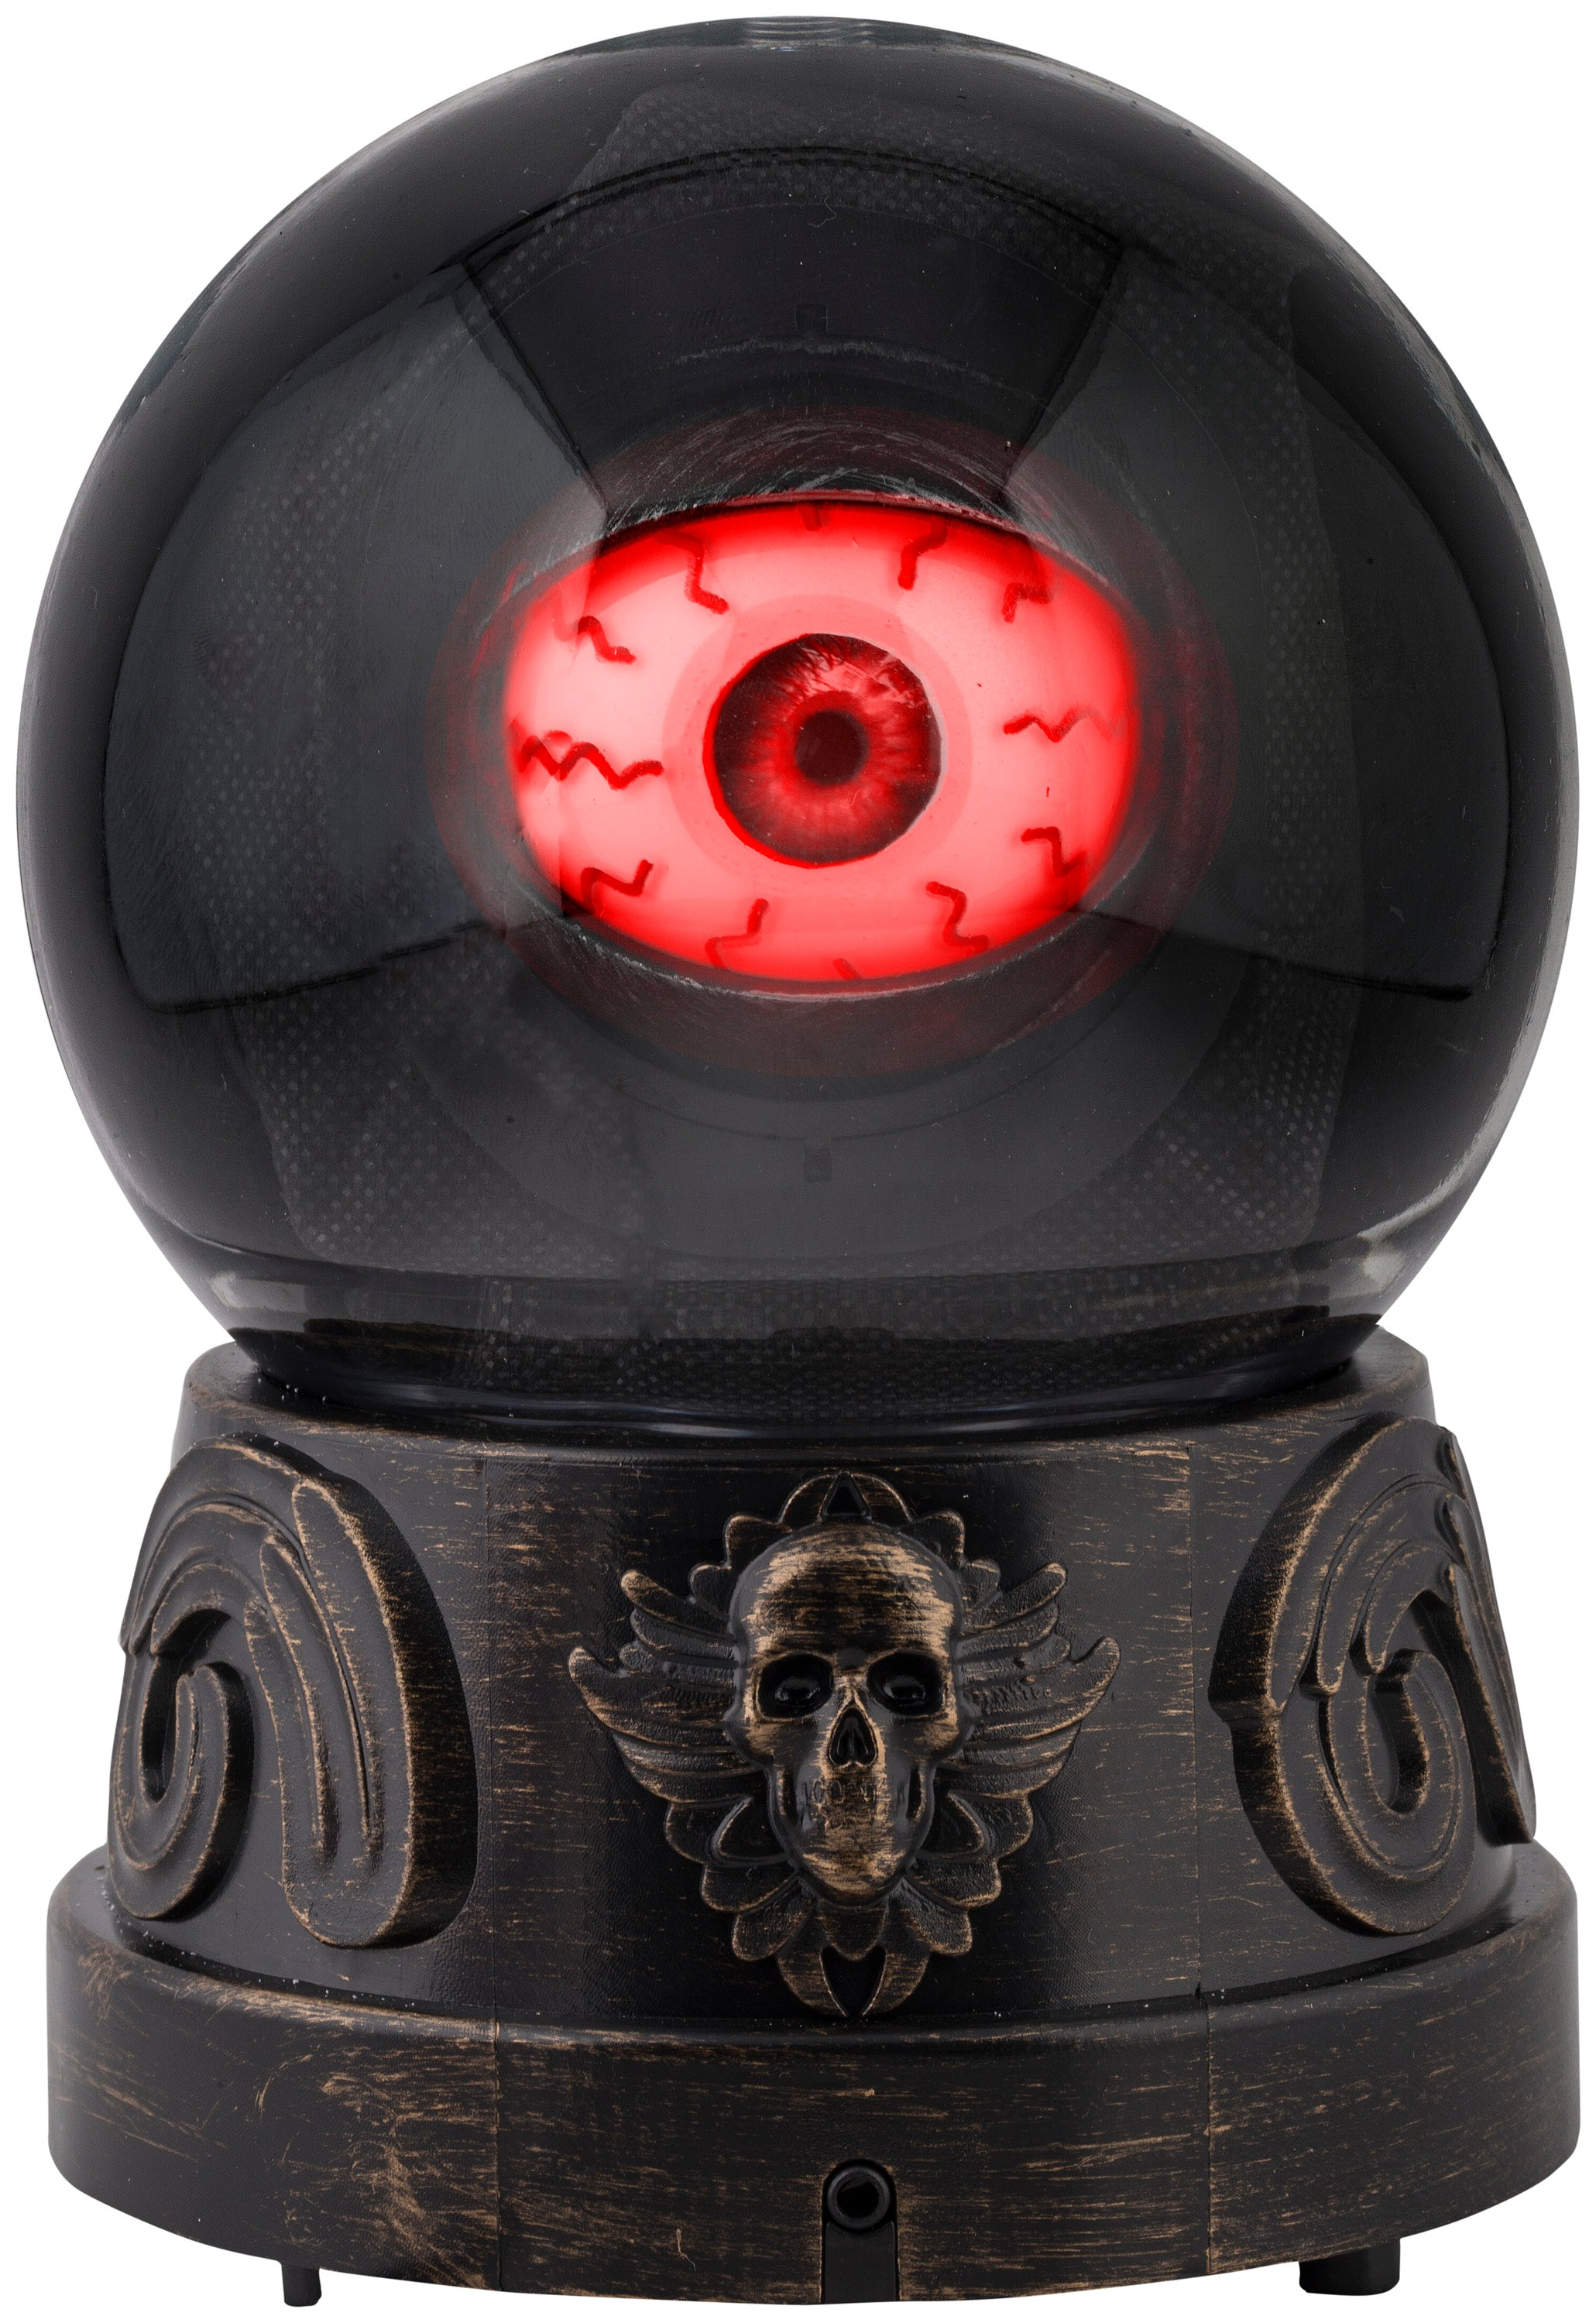 Animated Eyeball in Crystal Ball Halloween Prop